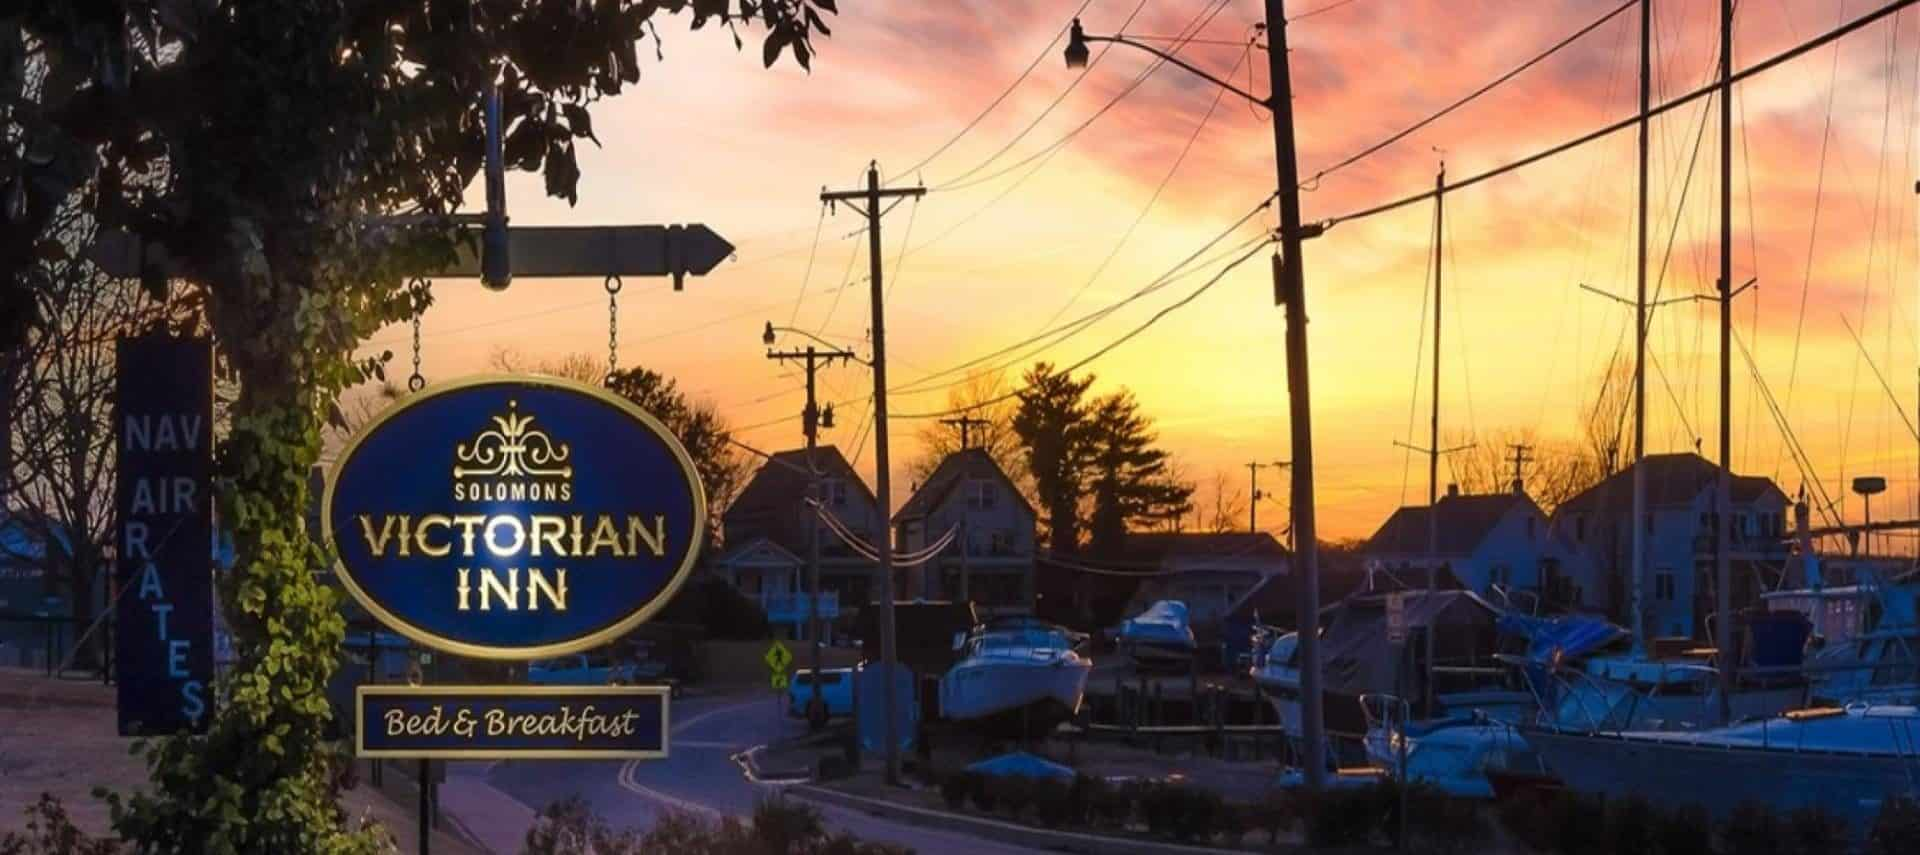 View of the Solomons Victorian Inn sign with the marina and buildings in the background at sunset